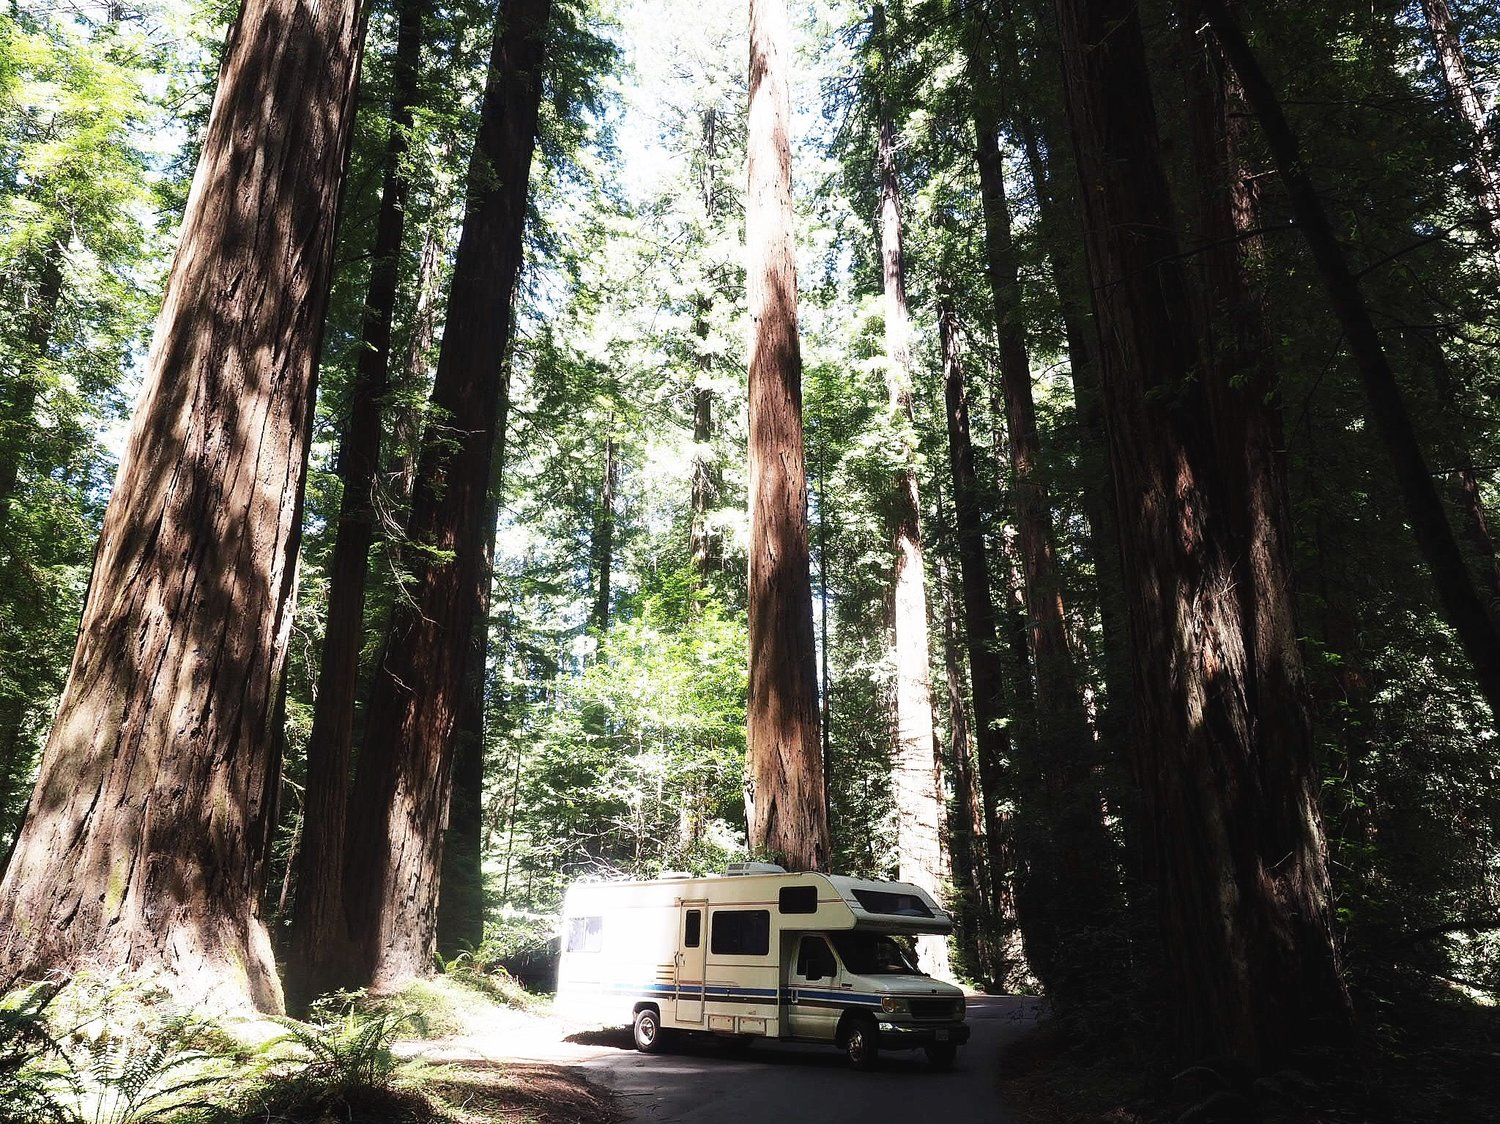 THE REMARKABLE REDWOOD TREES OF CALIFORNIA -